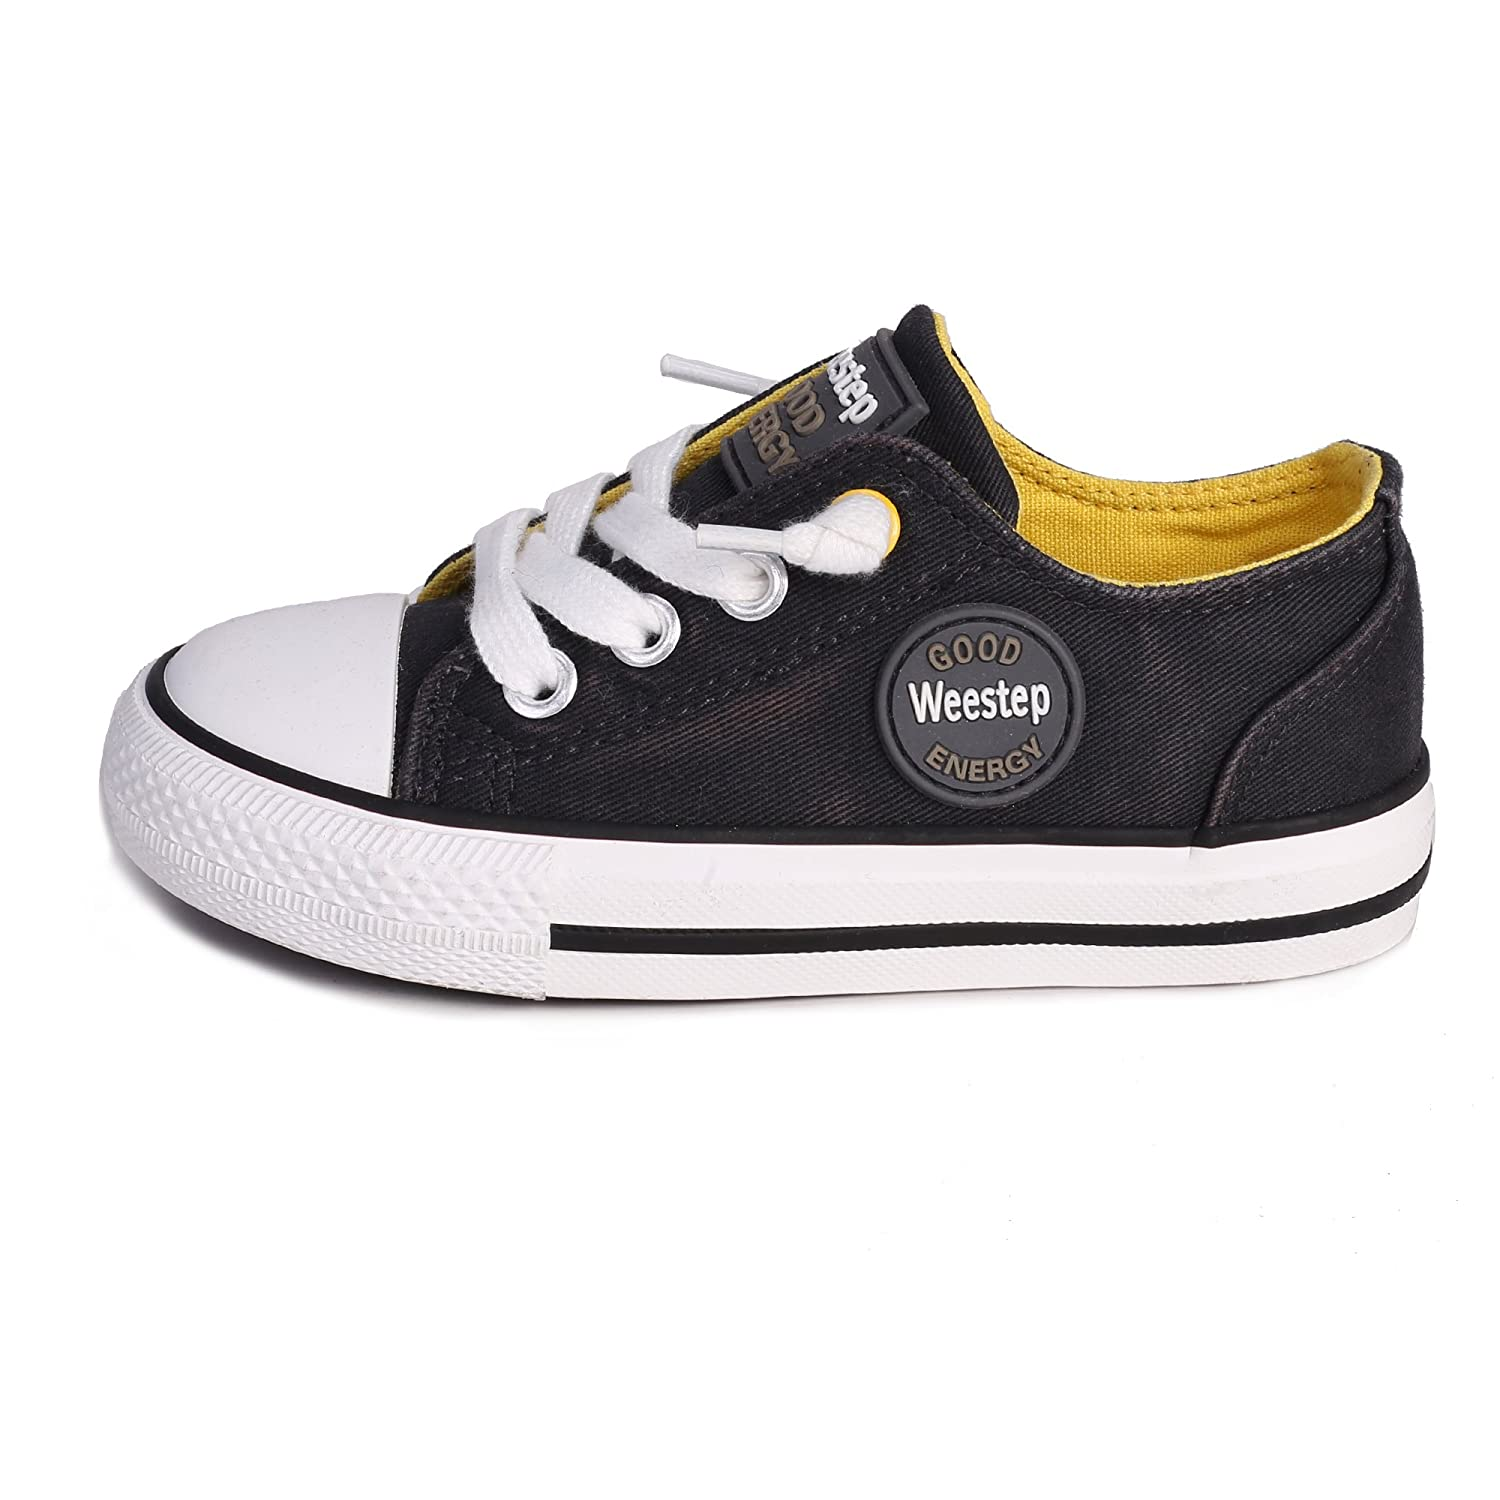 Weestep Toddler//Little Kid Boys and Girls Slip On Canvas Sneakers